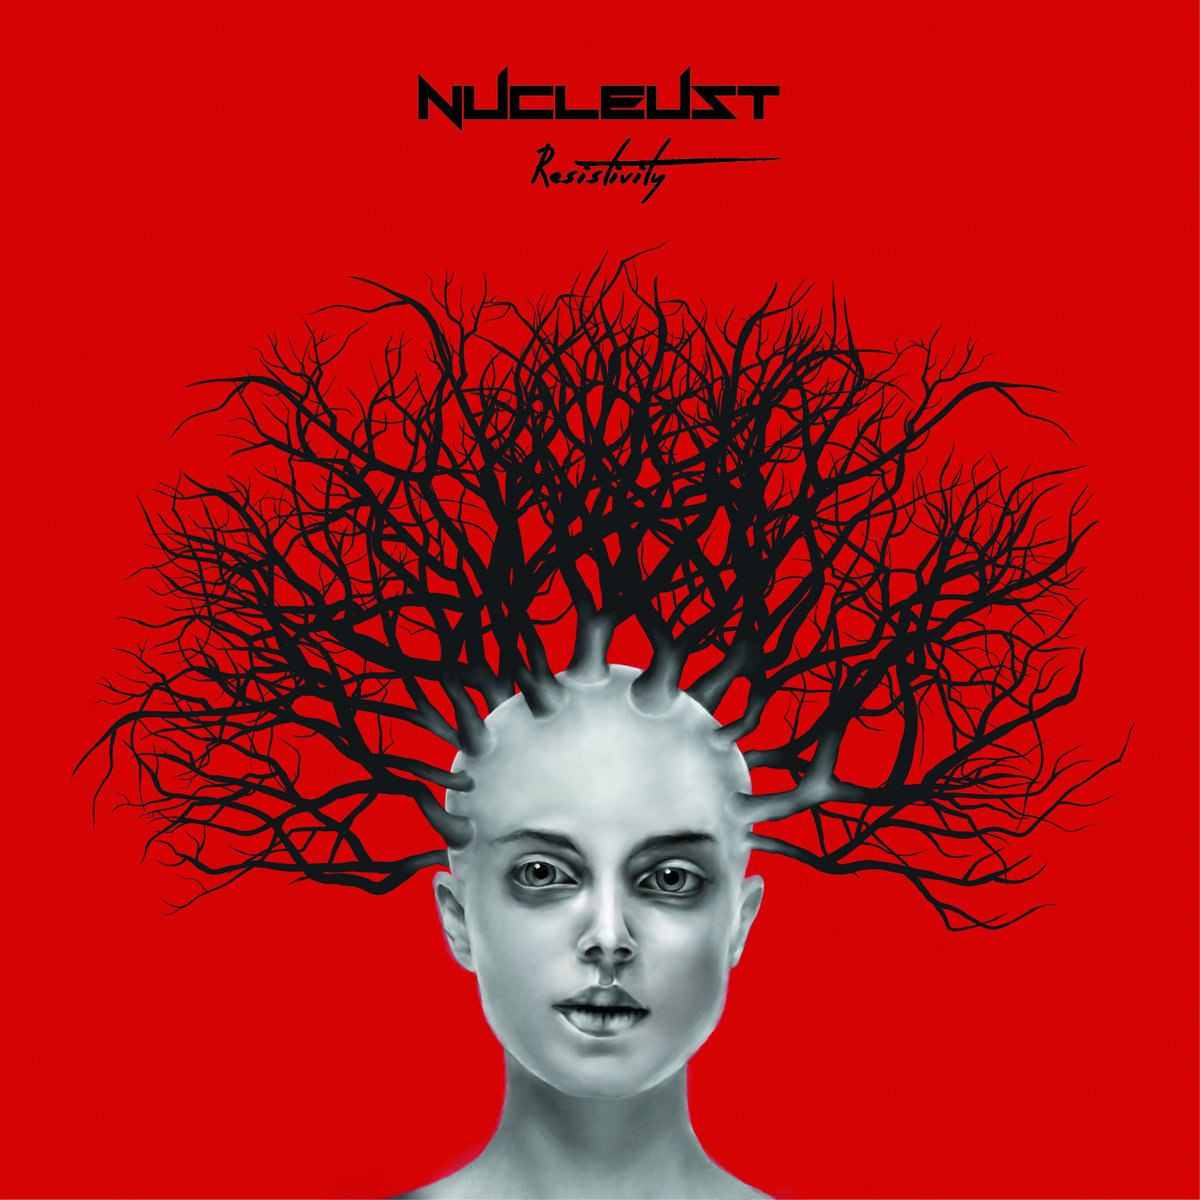 Nucleust - Fear The Fearless [single] (2016)